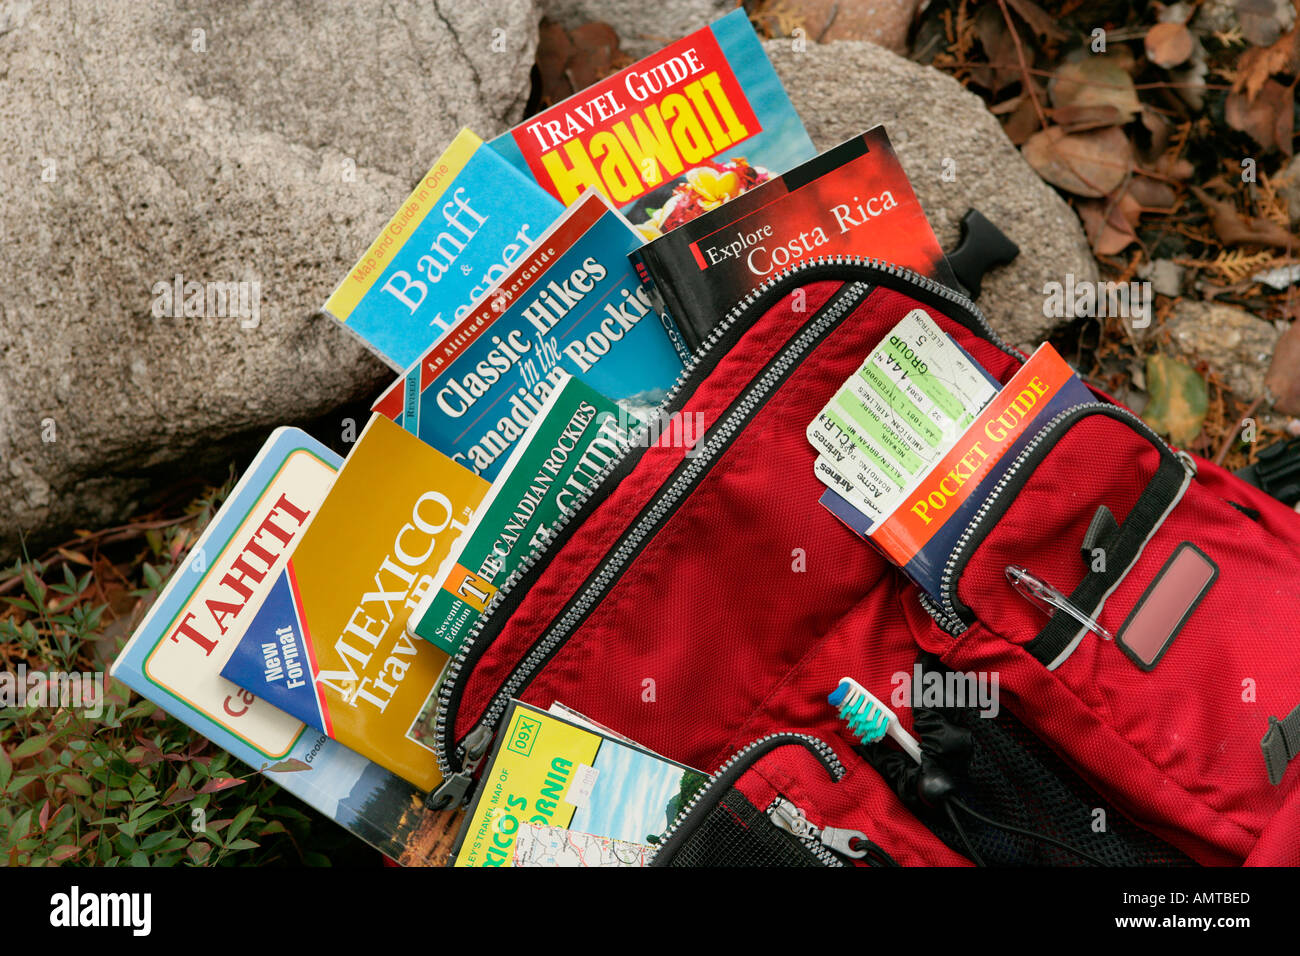 A hiker's backpack overflowing with travel books guides and maps - Stock Image